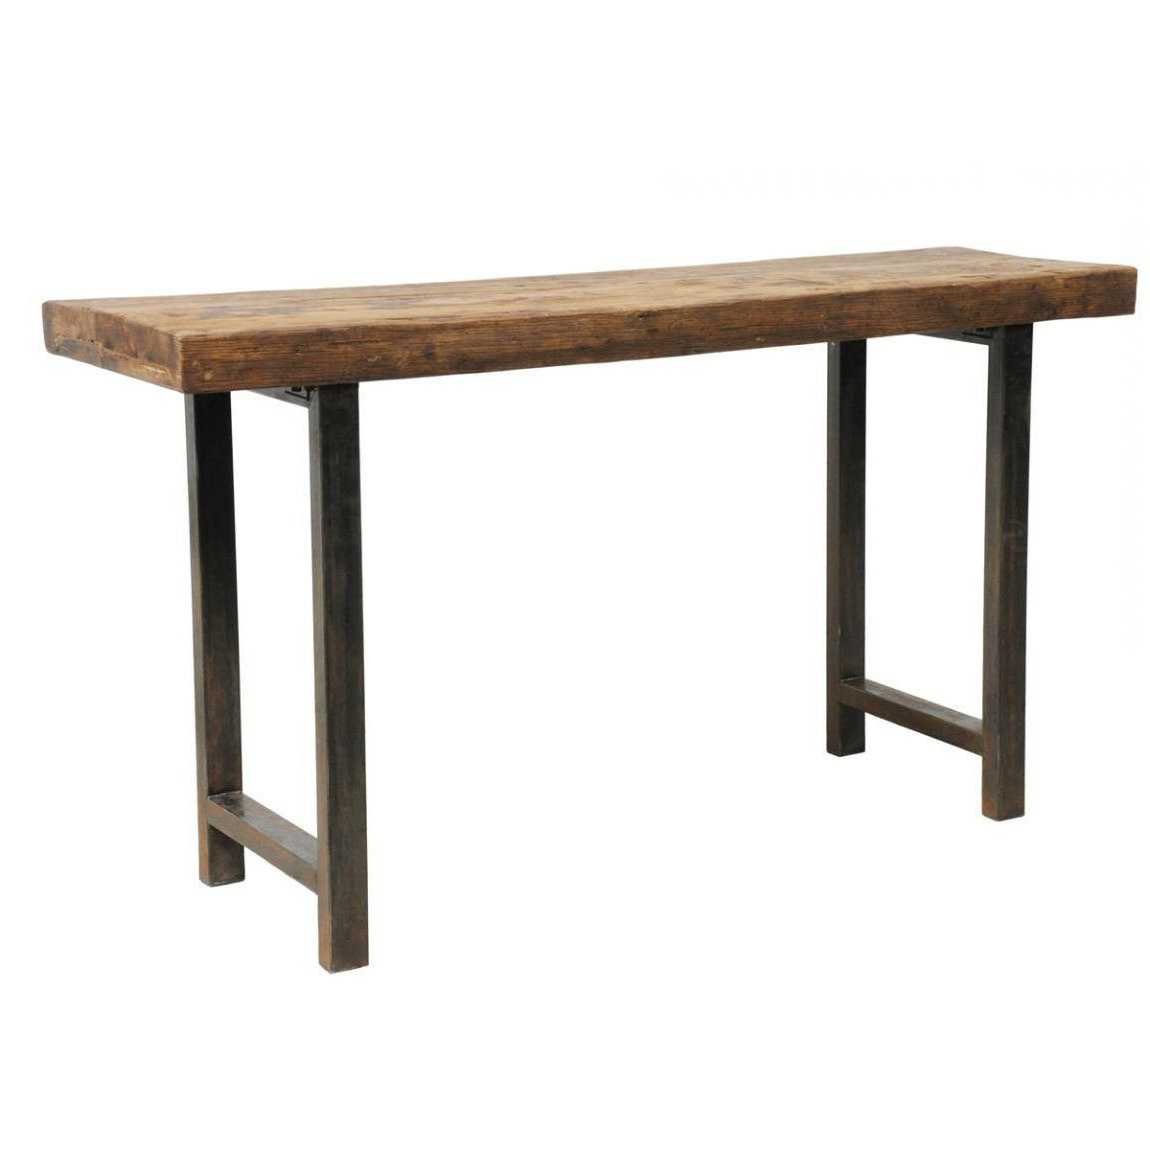 Elinor Tall Slim Desk | Desk | Pinterest | Desks, House Projects And Pertaining To Era Limestone Console Tables (Gallery 12 of 20)